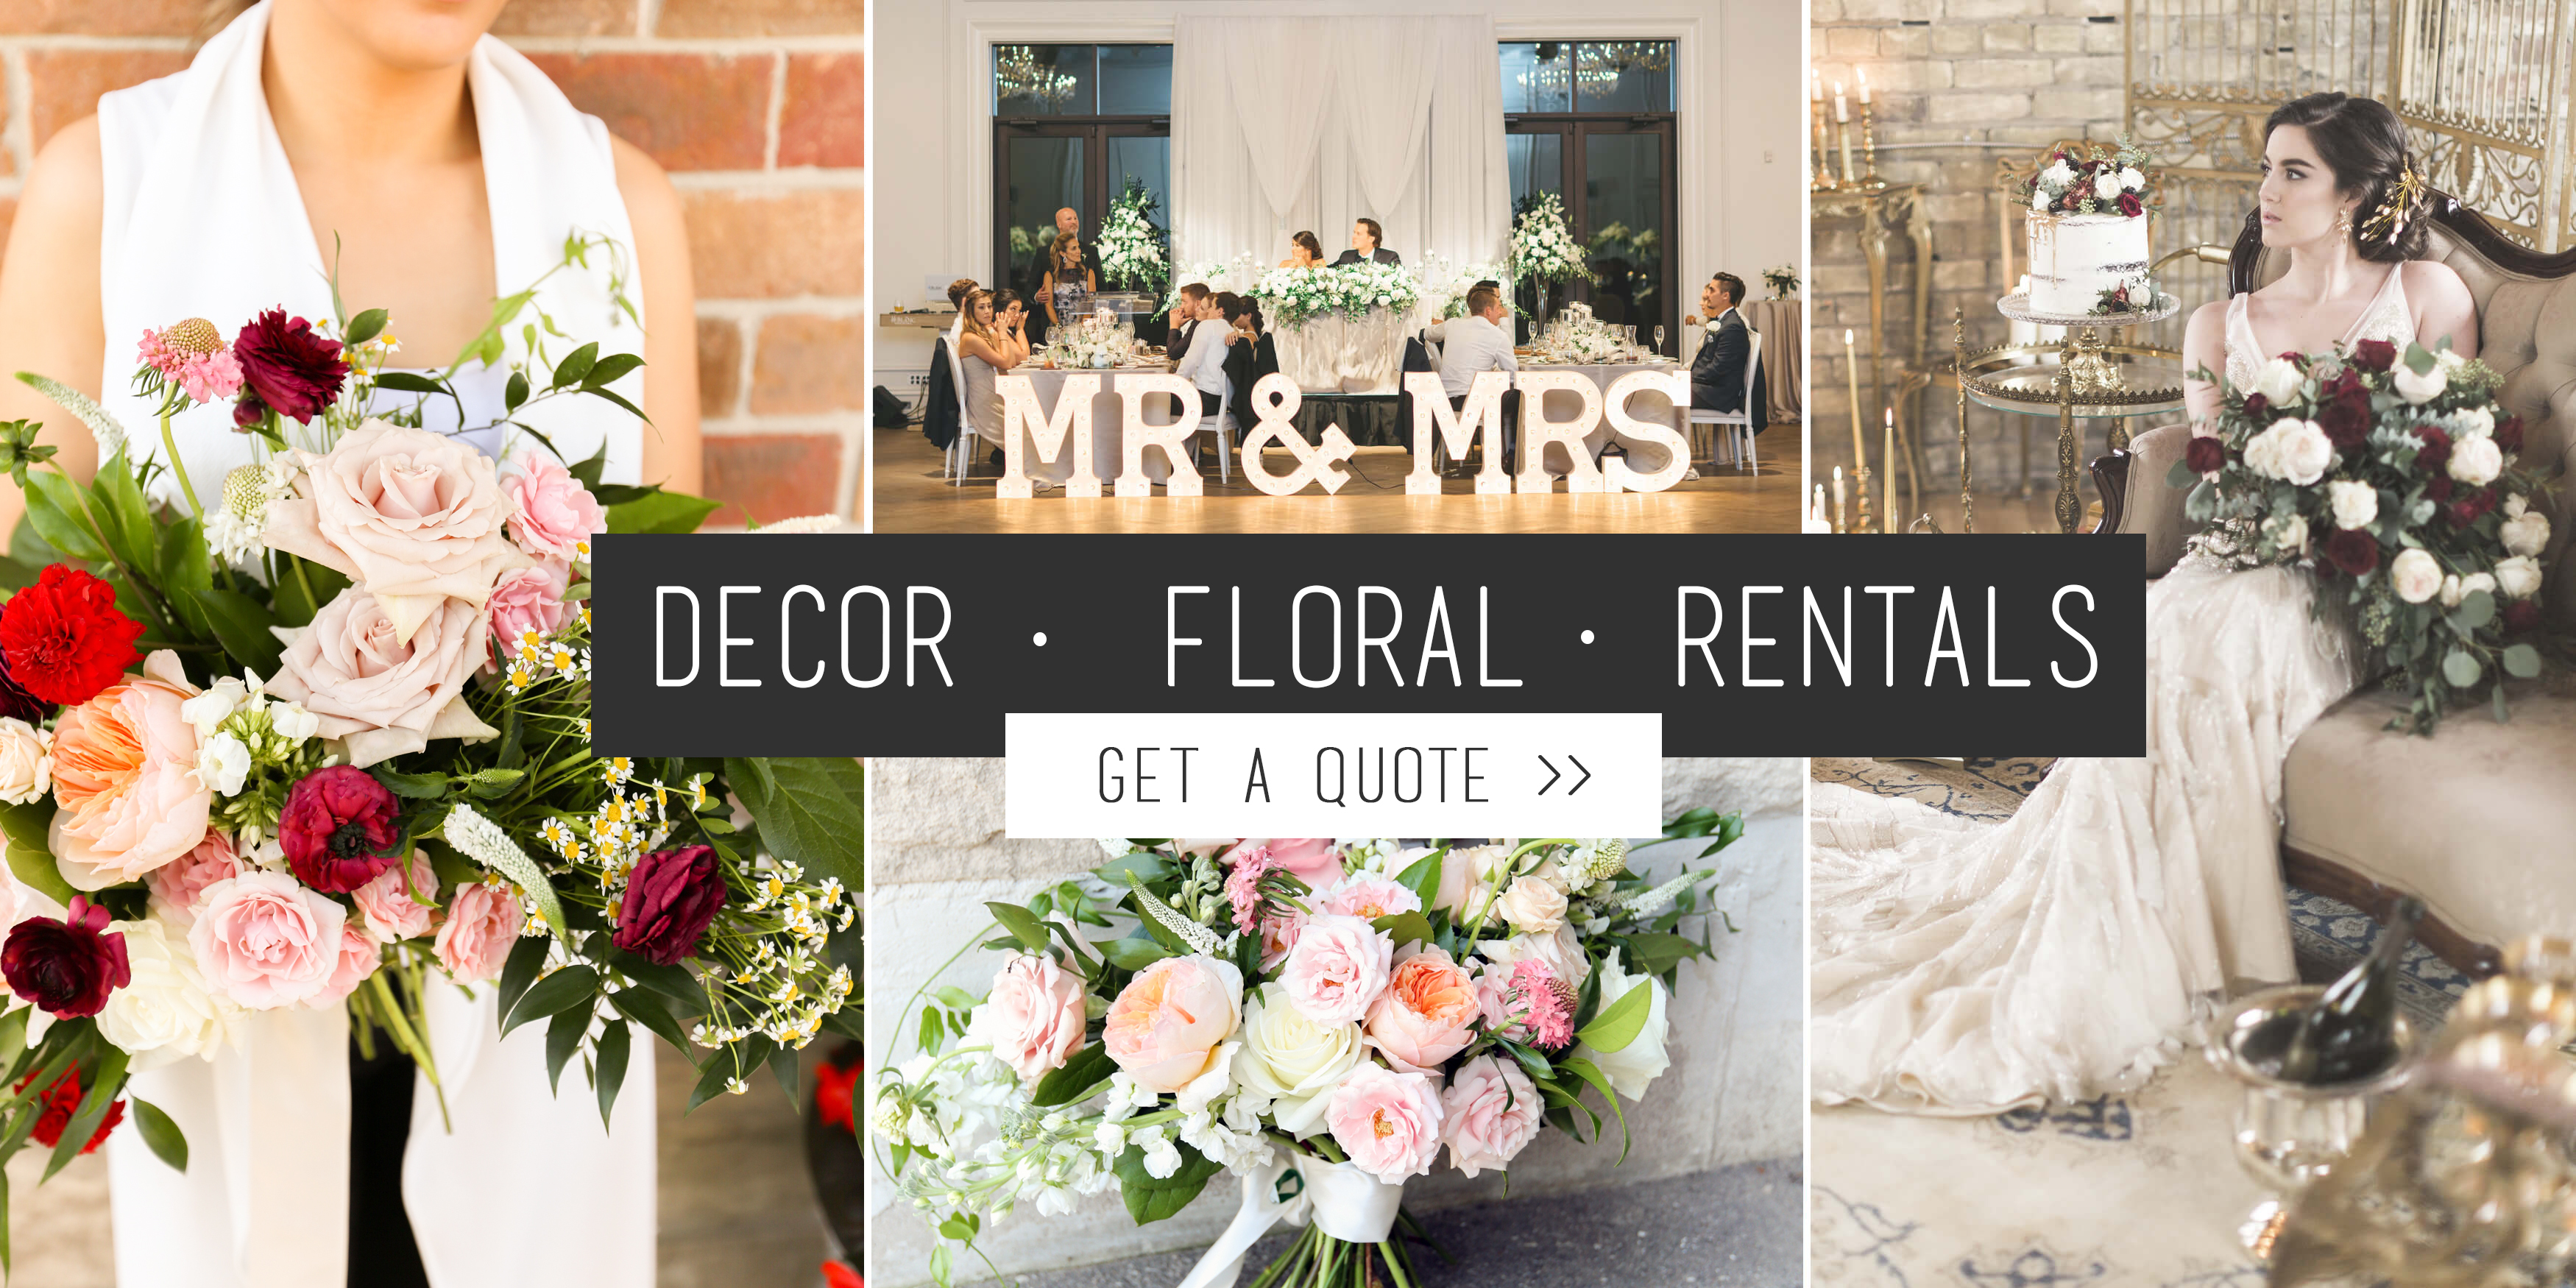 Toronto florist decorator event rentals events weddings gta vintagebash events and wedding decor floral event rentals junglespirit